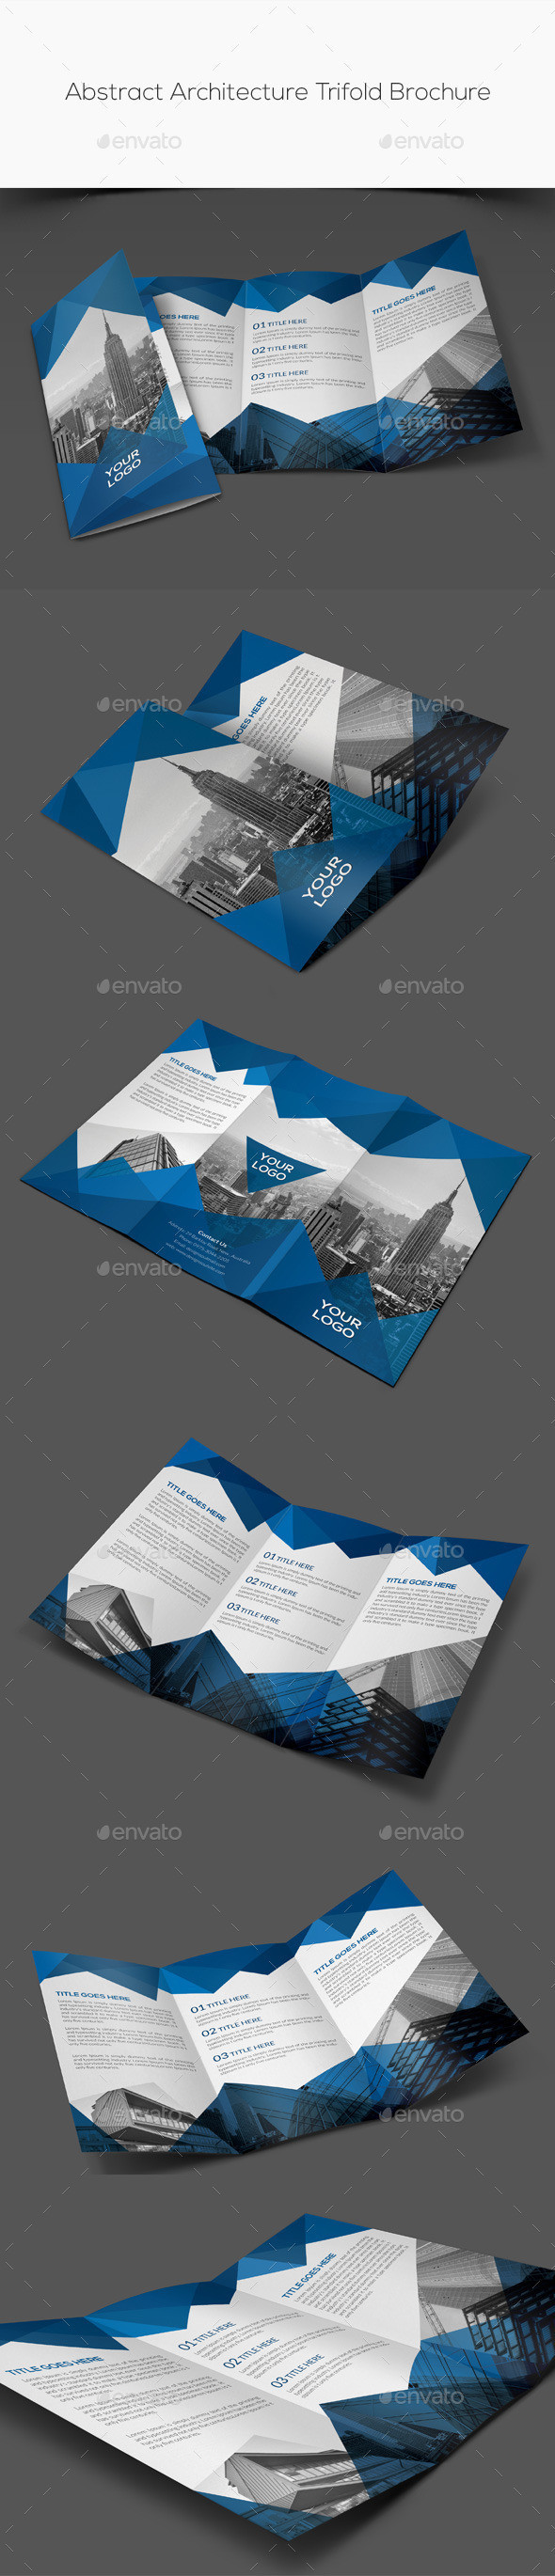 Abstract architecture trifold brochure preview